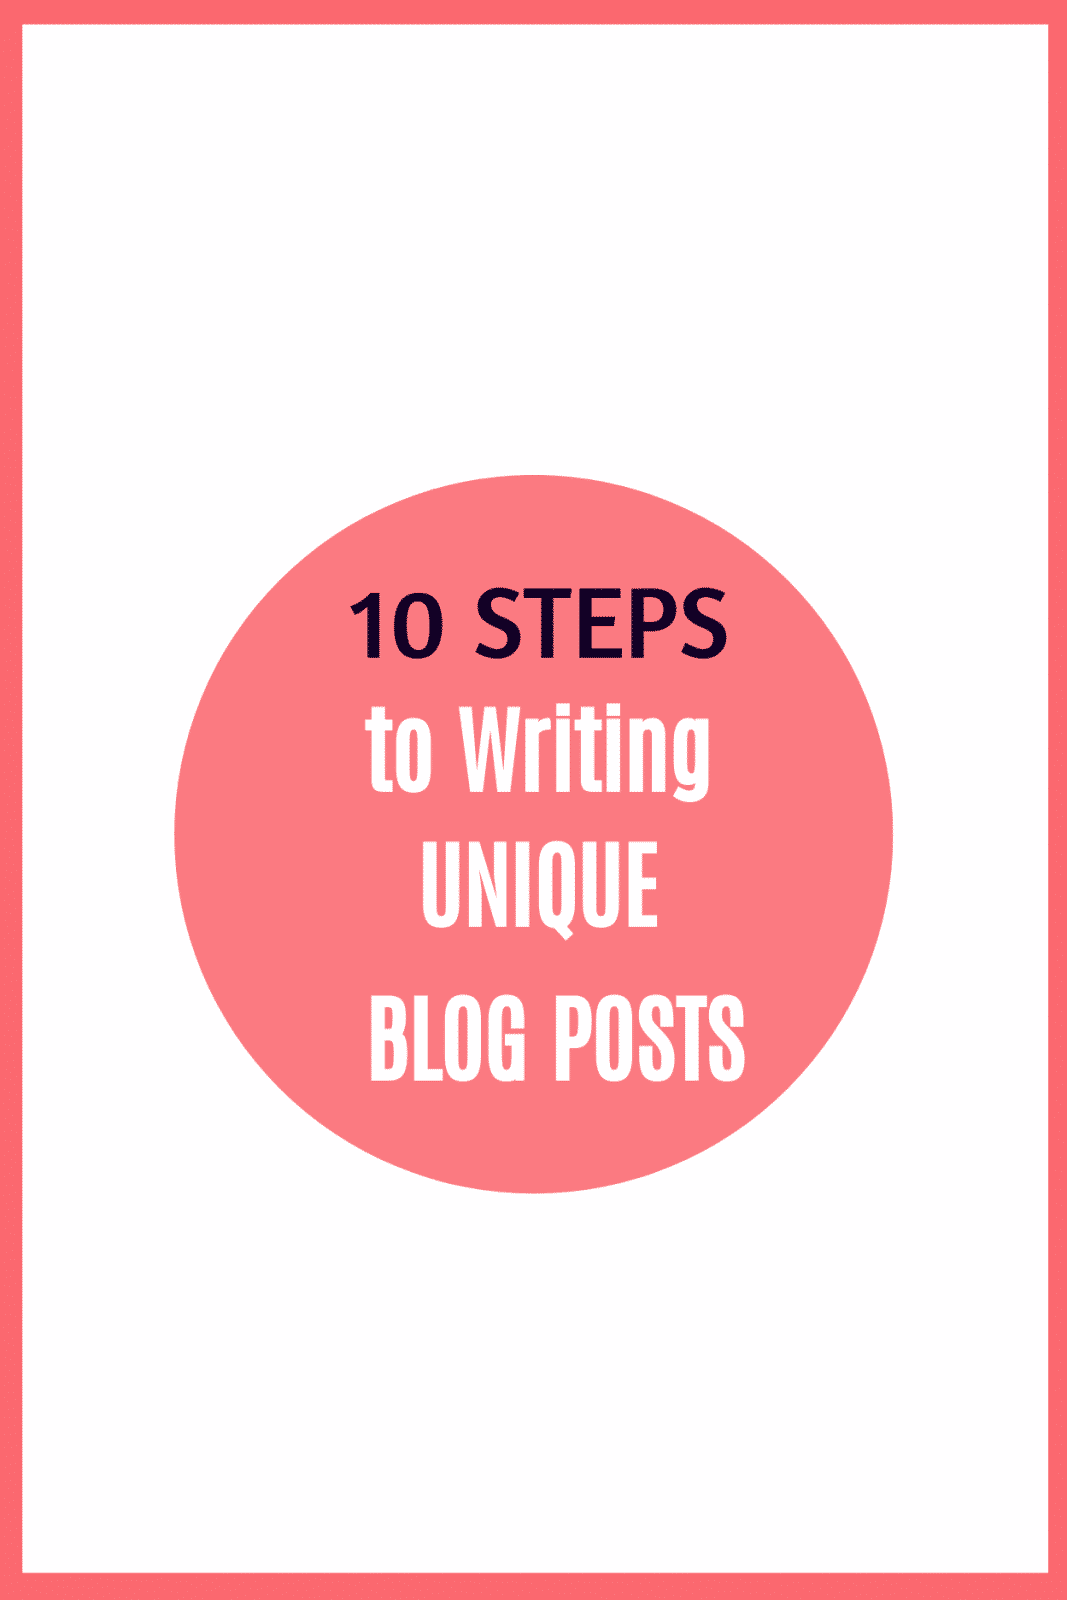 Ten critical steps to creating unique blog posts